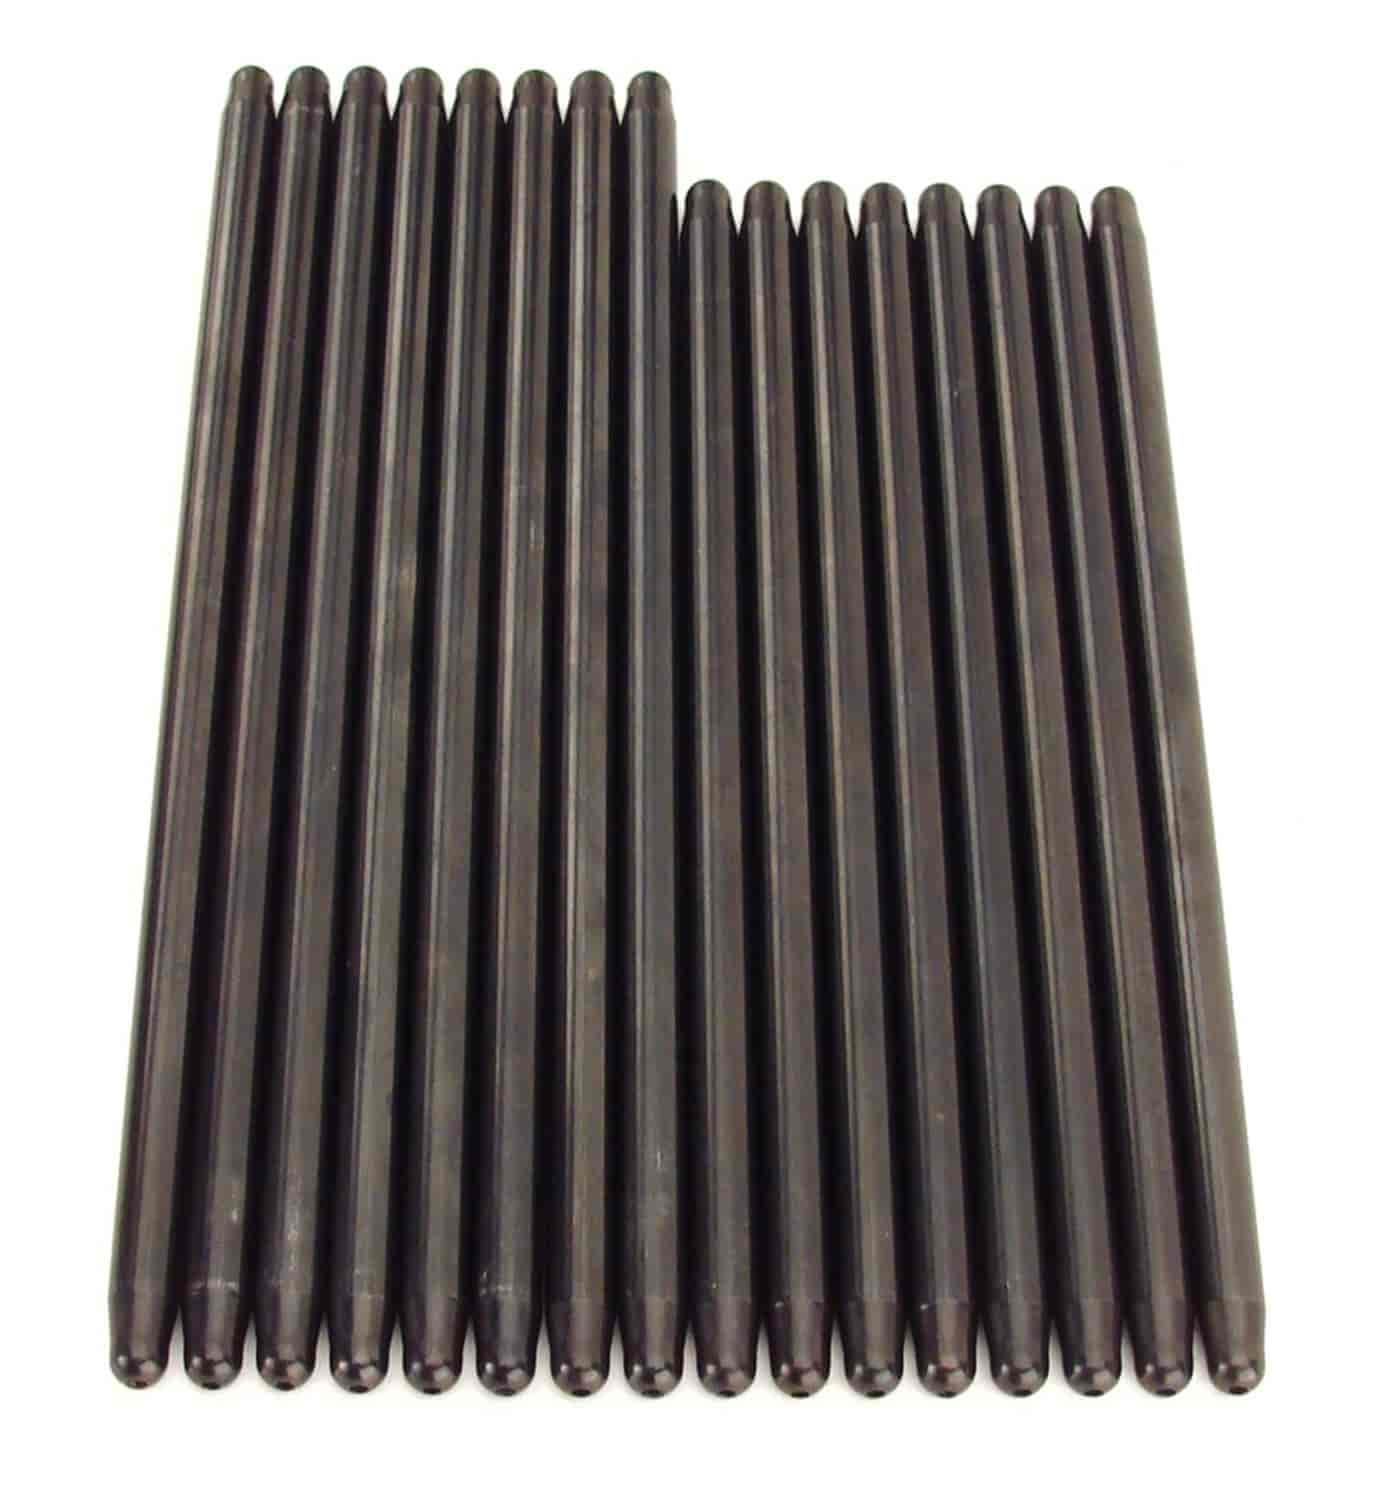 COMP Cams 7964-16 - Comp Cams Hi-Tech Pushrods